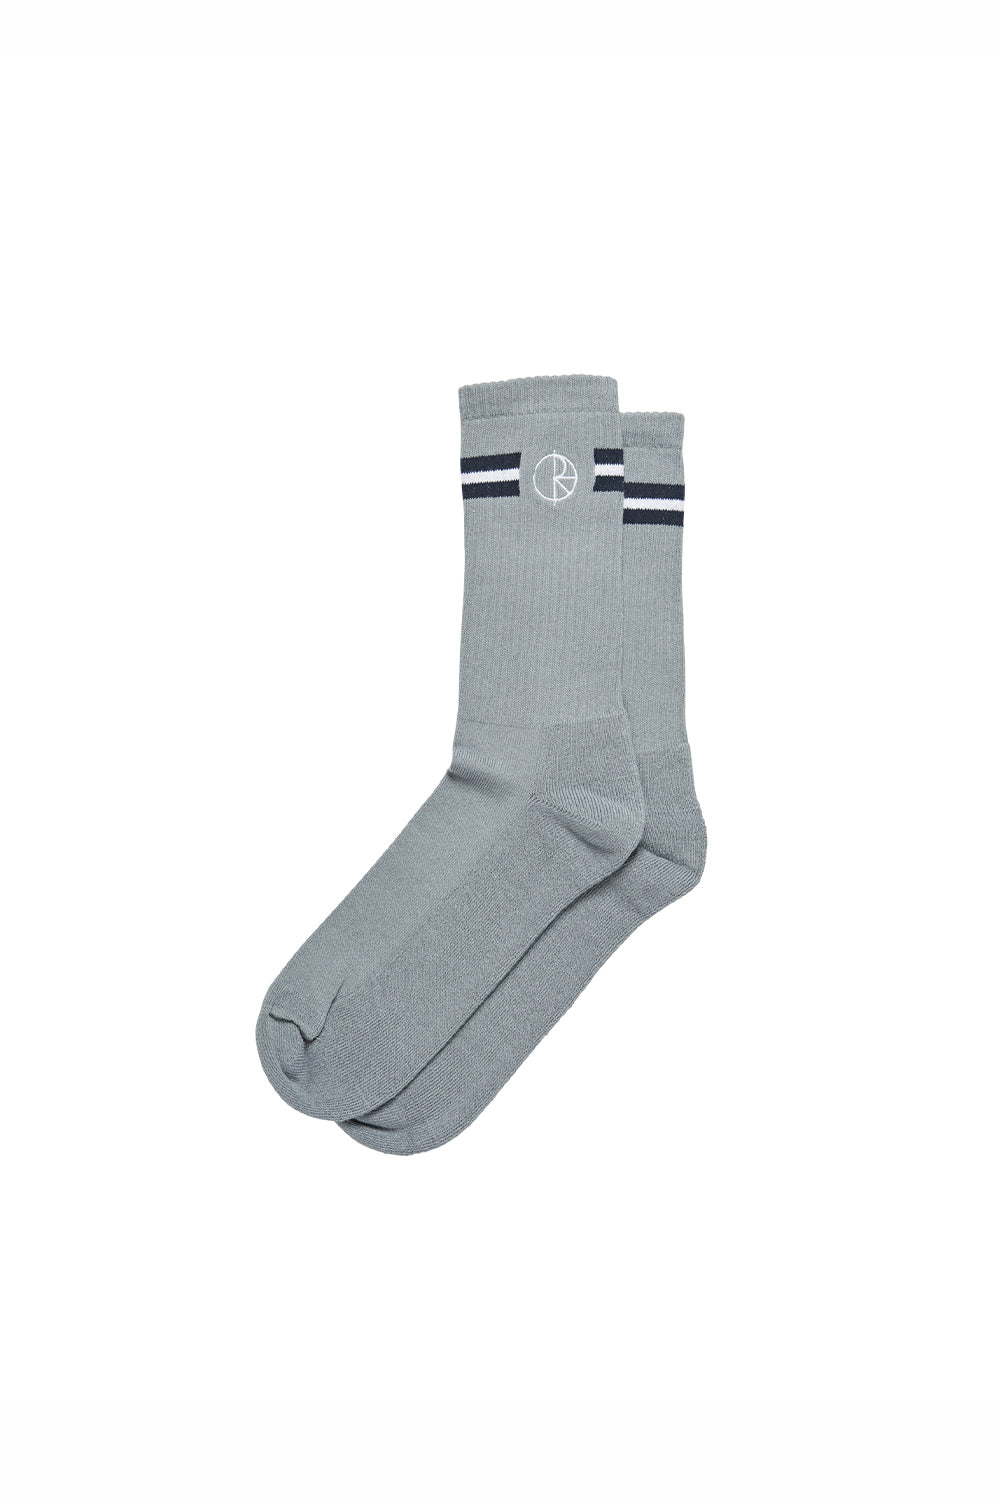 Polar Skate Co Stroke Logo Socks - Grey/Blue/White | Buy Polar Skate Co Online